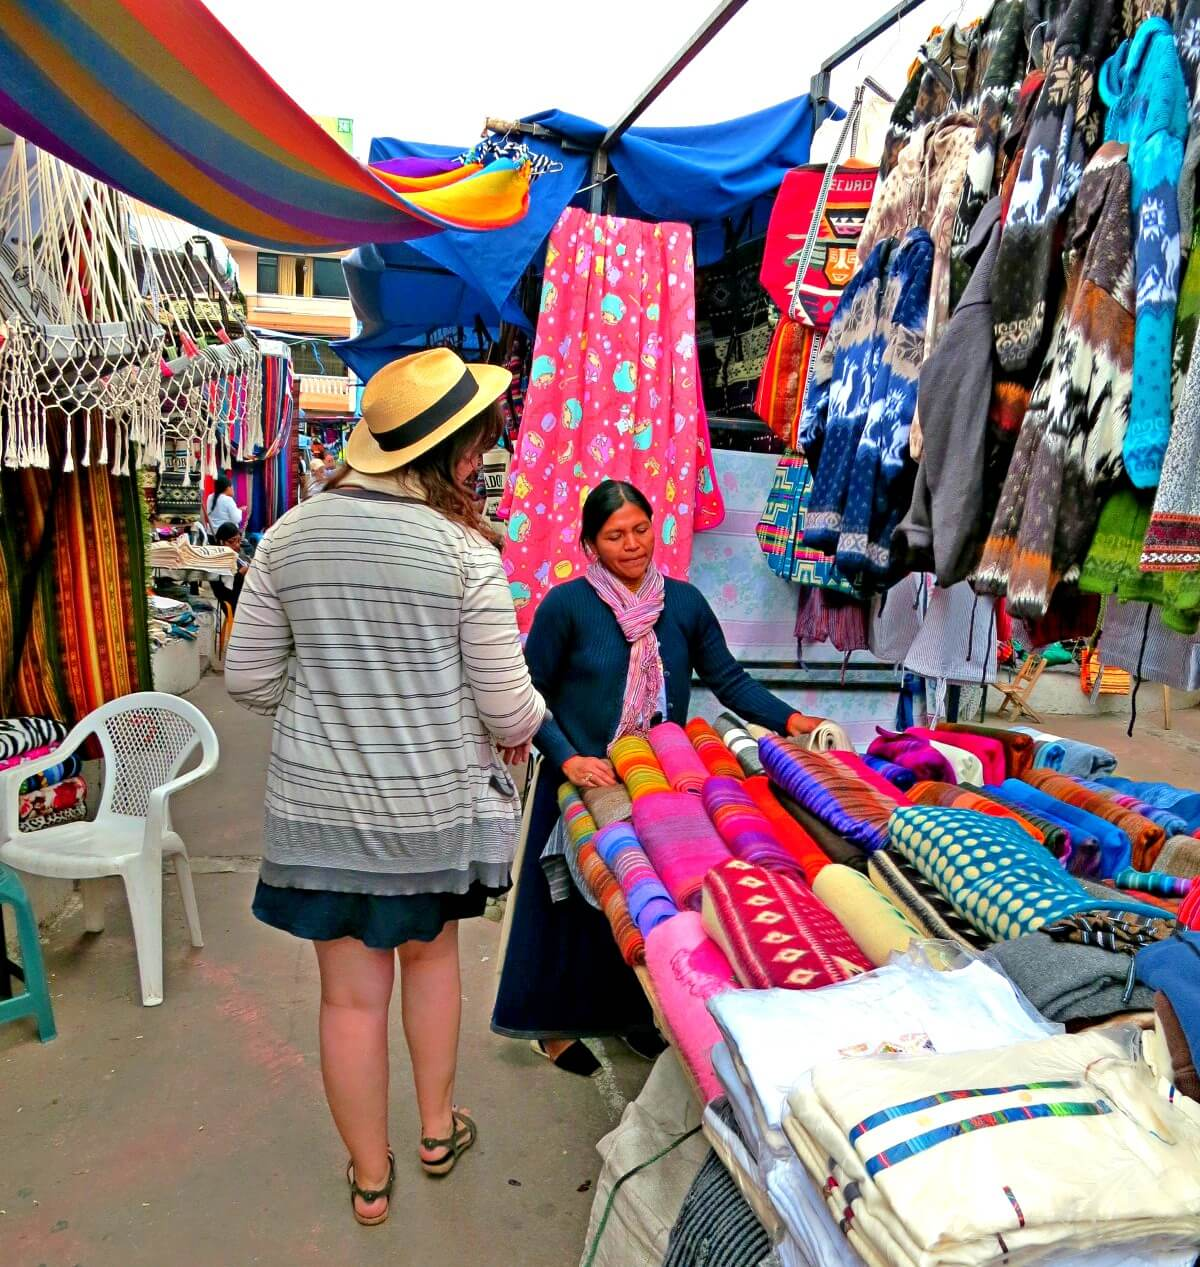 Shopping at Otavalo Market in Ecuador. We didn't realize you shouldn't buy alpaca products in Ecuador. Just another one of the things nobody told us about traveling to Ecuador!